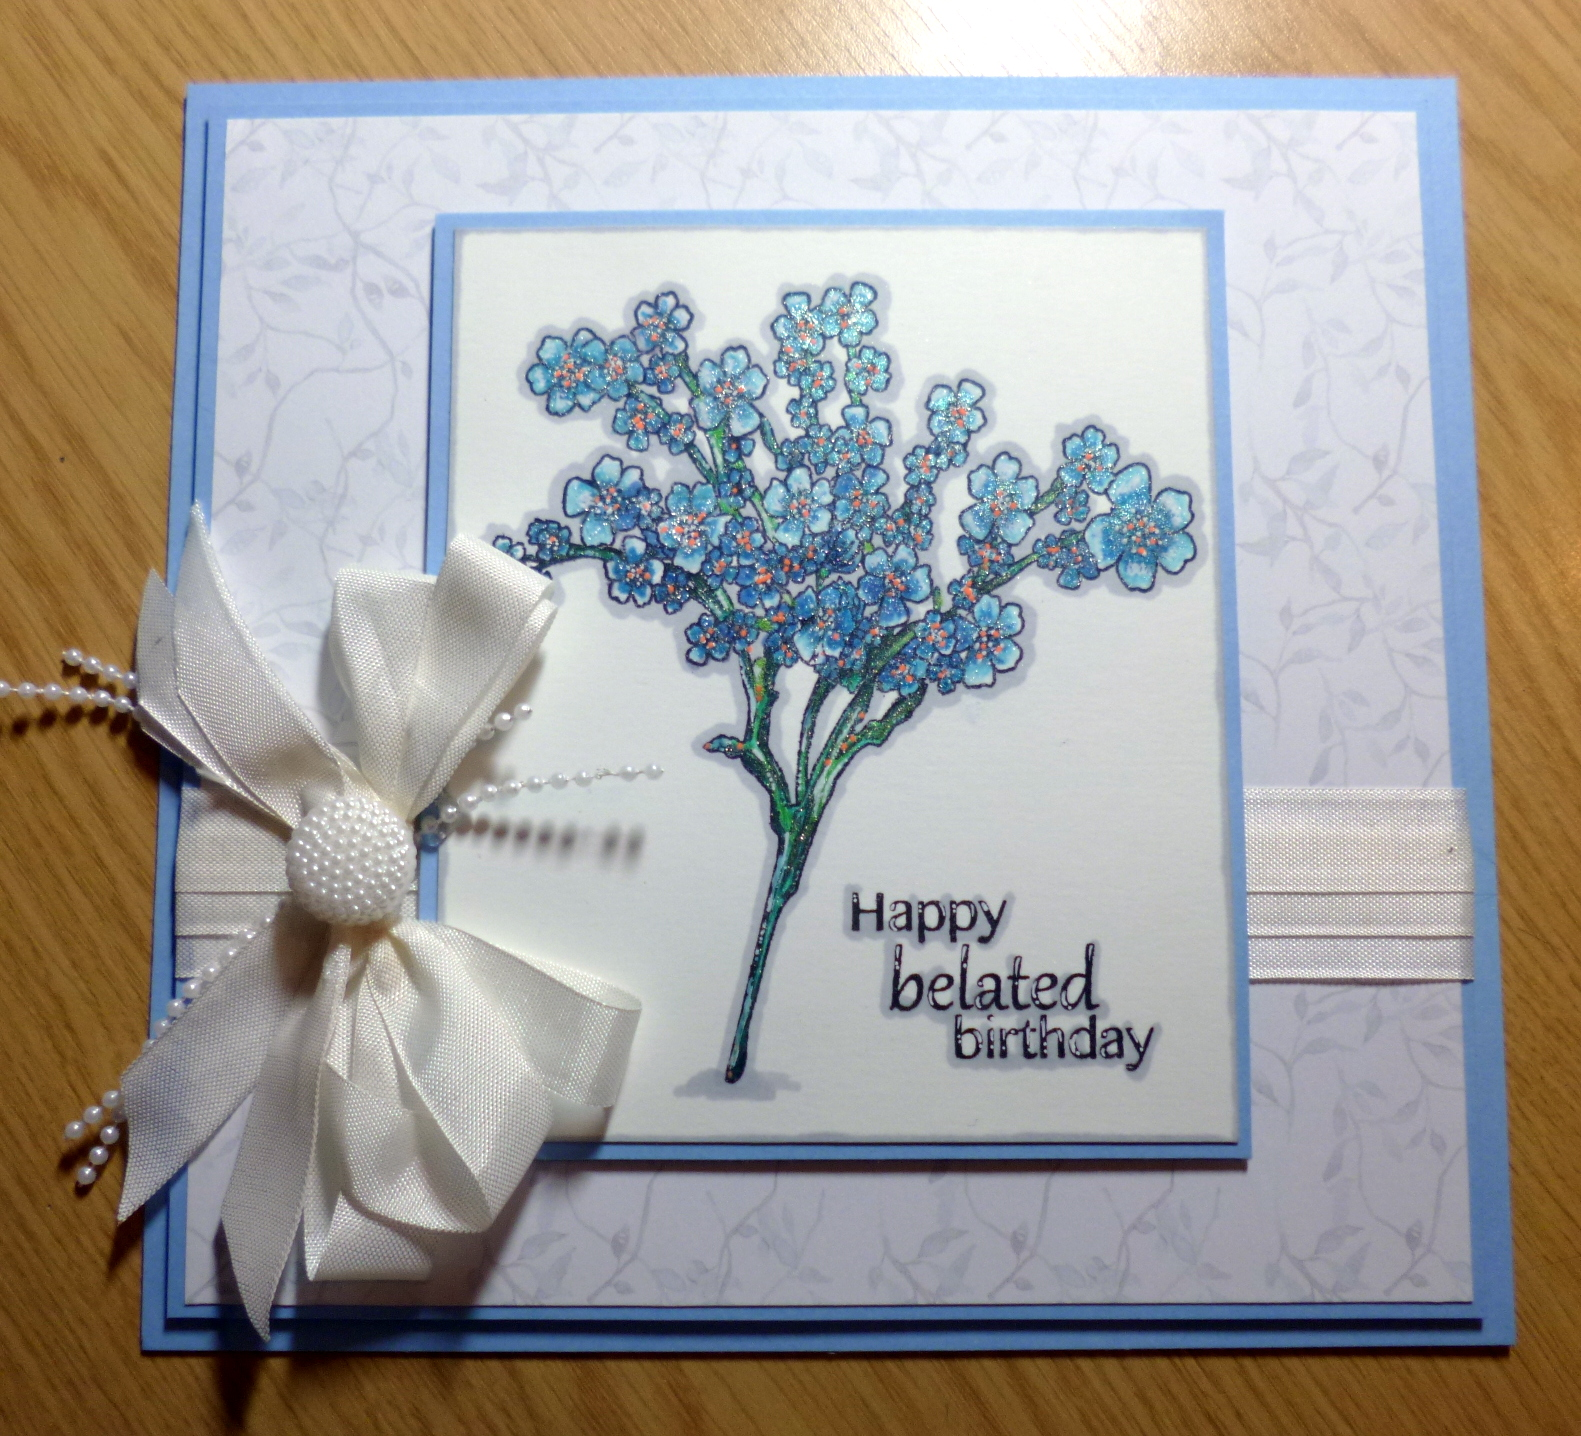 Inky kim craft creative expressions thursday this one simple and let the stamp speak for itself as it is so pretty using just a piece of the wonderful paper pad we on the dt were sent for october izmirmasajfo